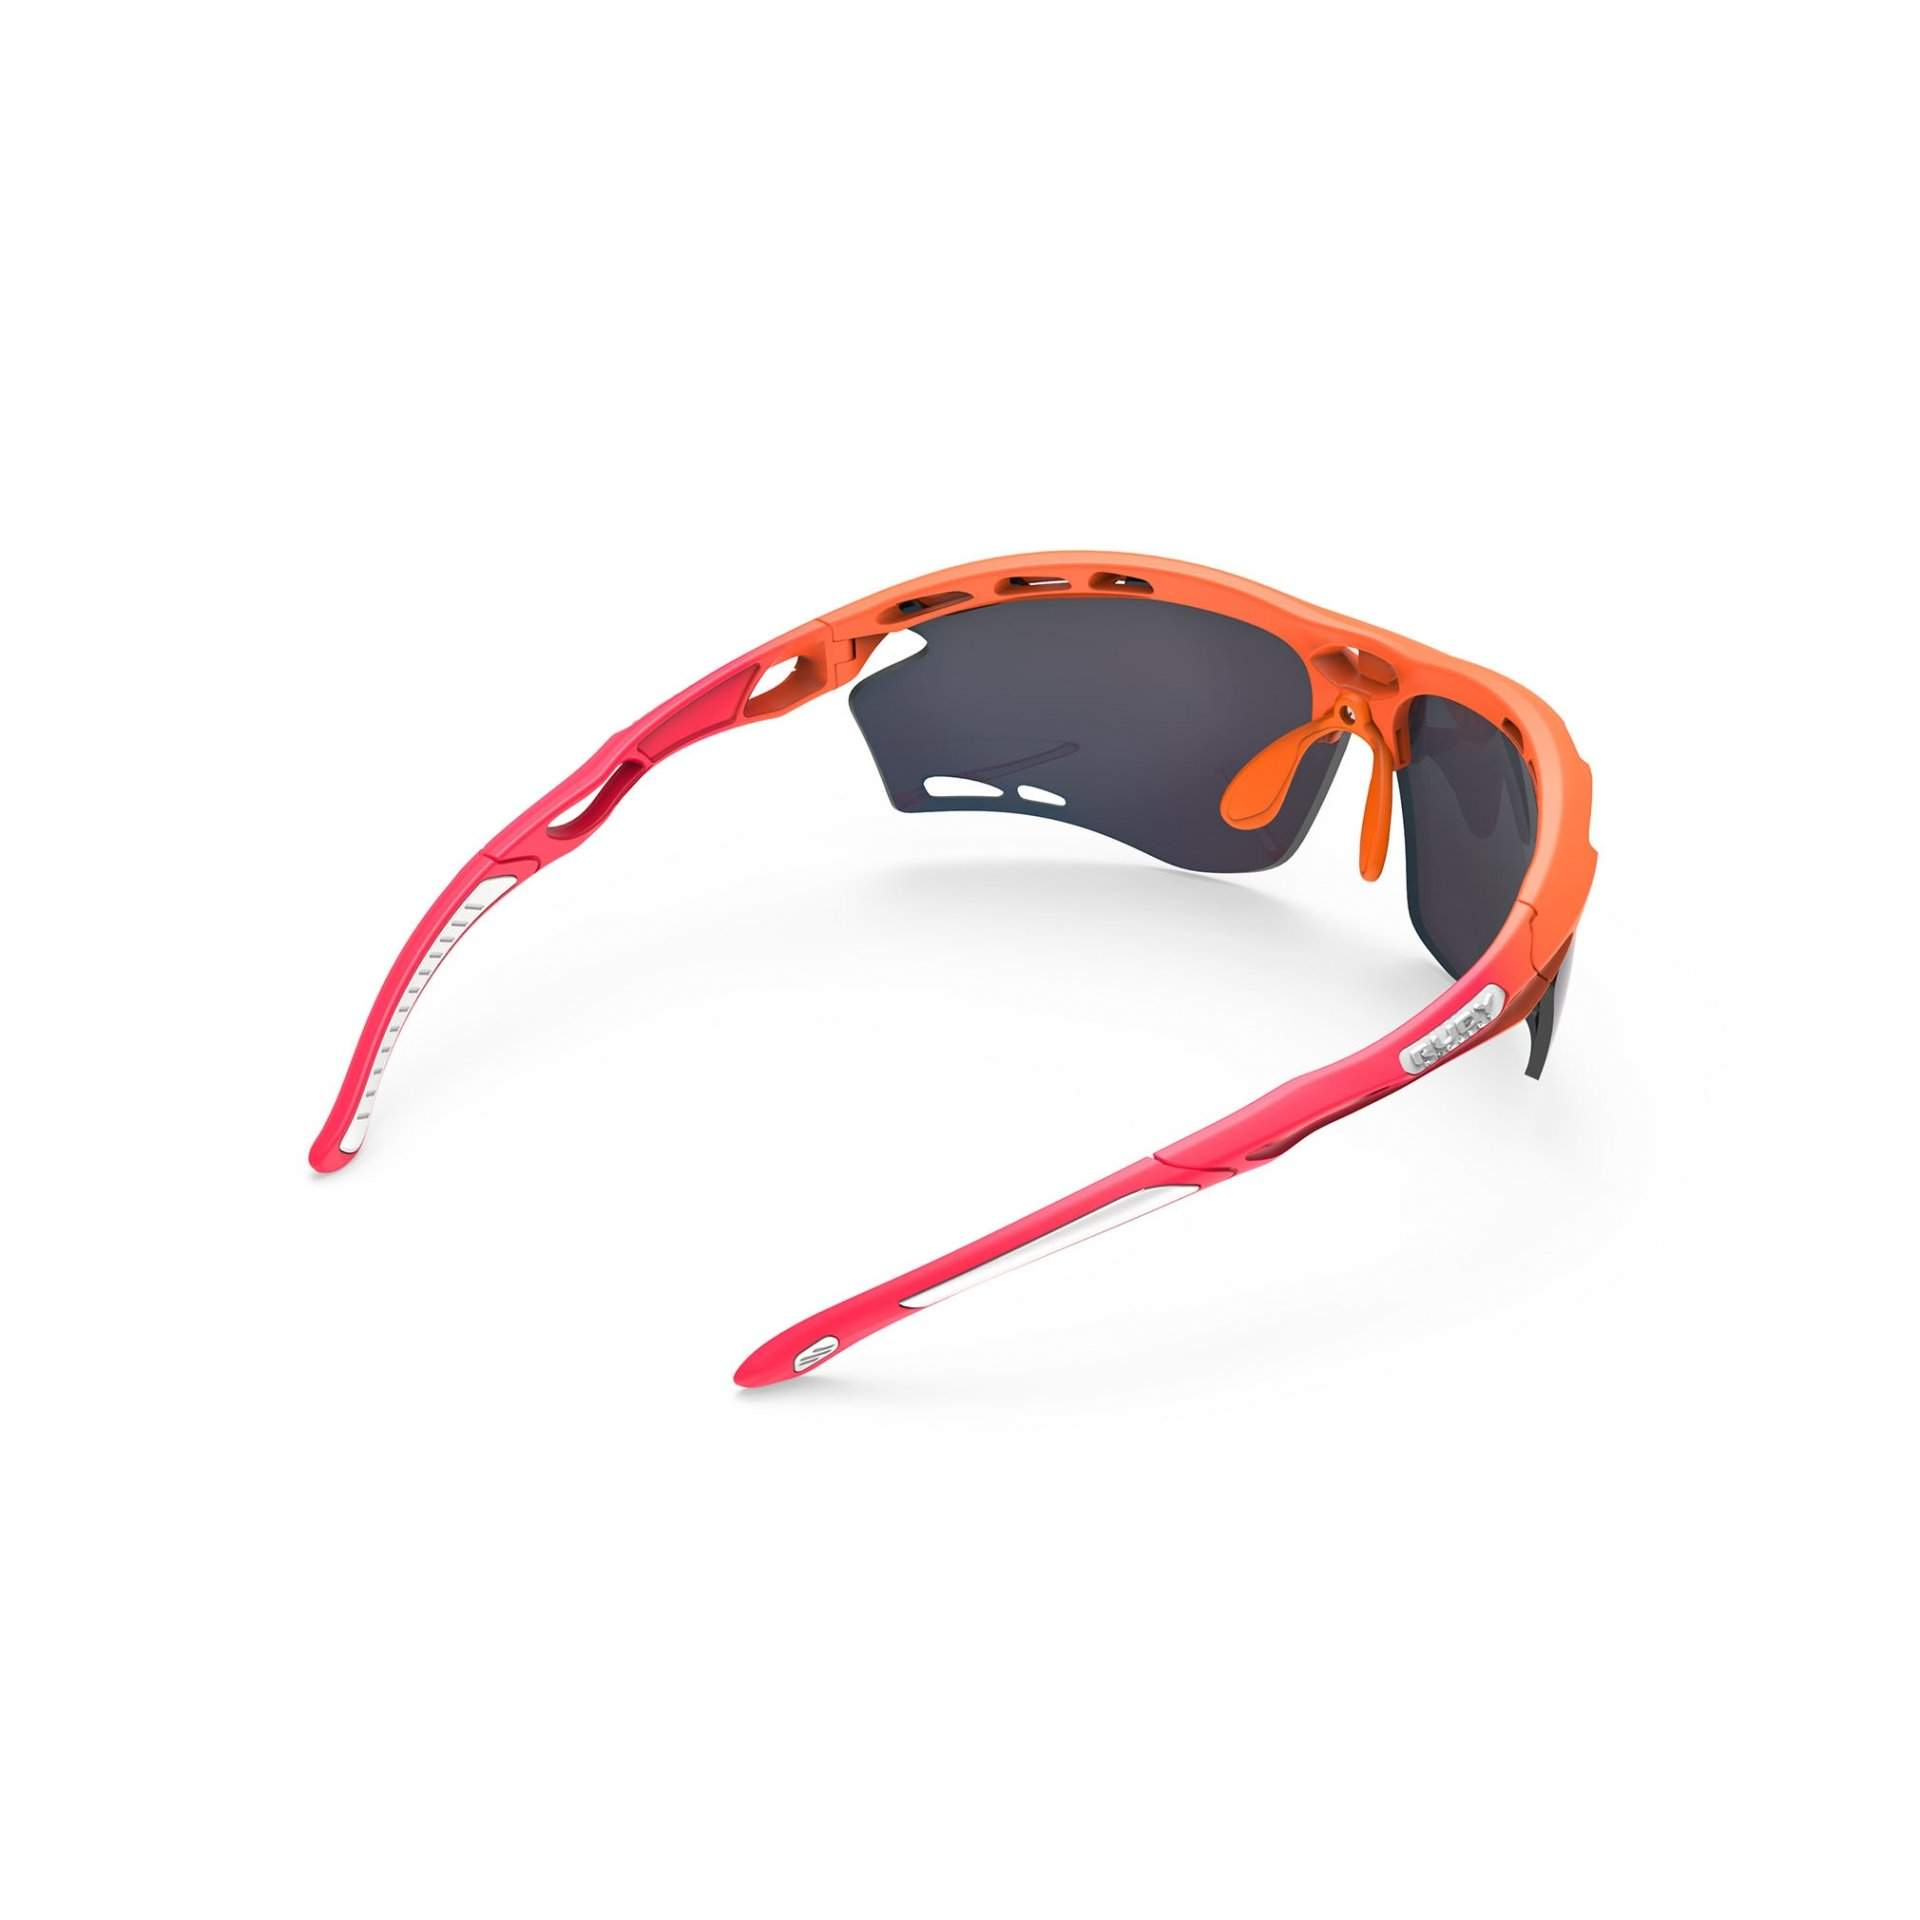 OKULARY RUDY PROJECT PROPULSE MANDARIN FADE CORAL|MULTILASER RED 5